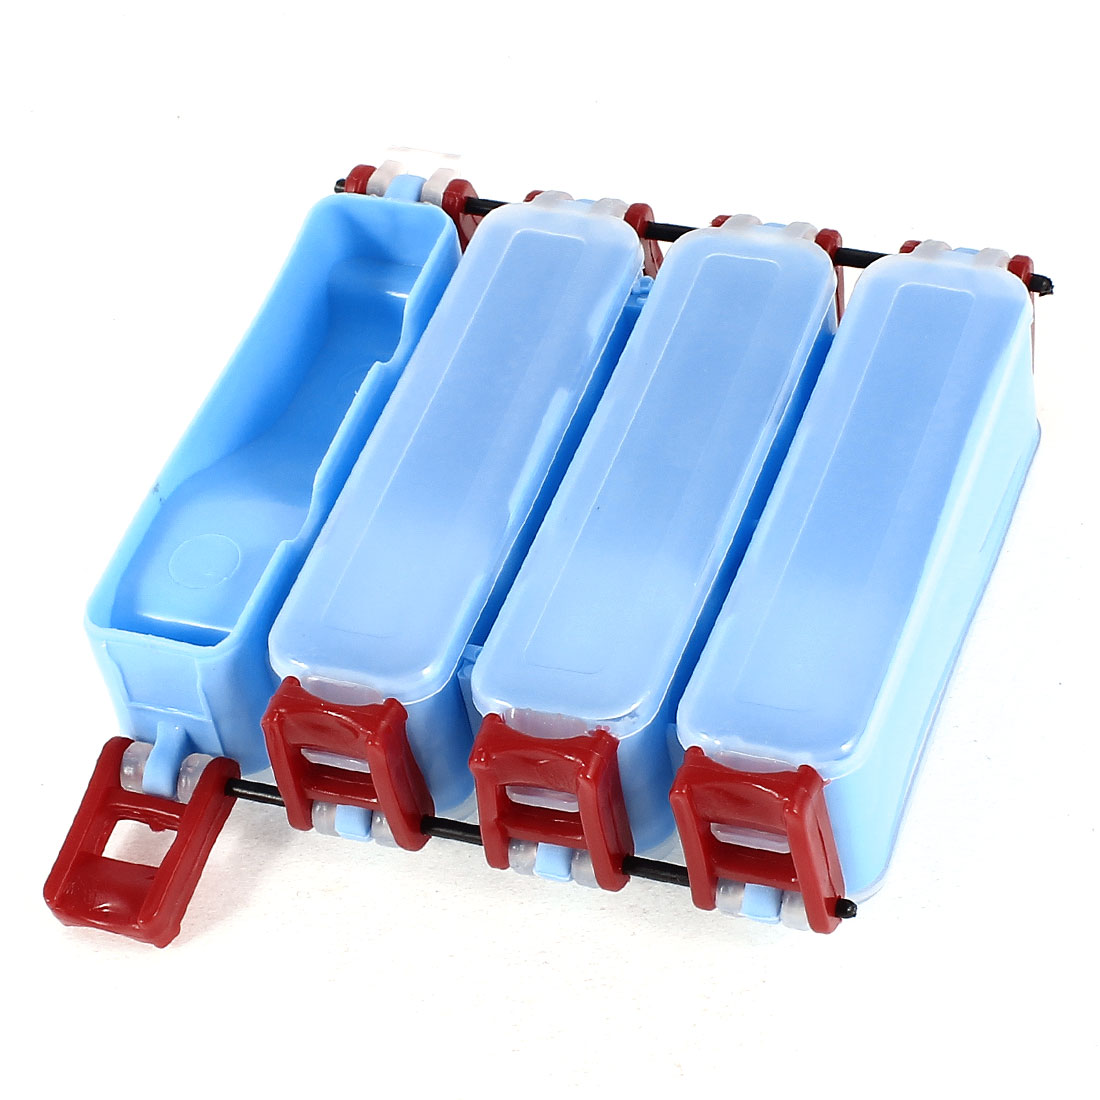 Unique Bargains Fishing Tackle Box Hook Lure Case Double Sides 8 Compartments by Unique-Bargains